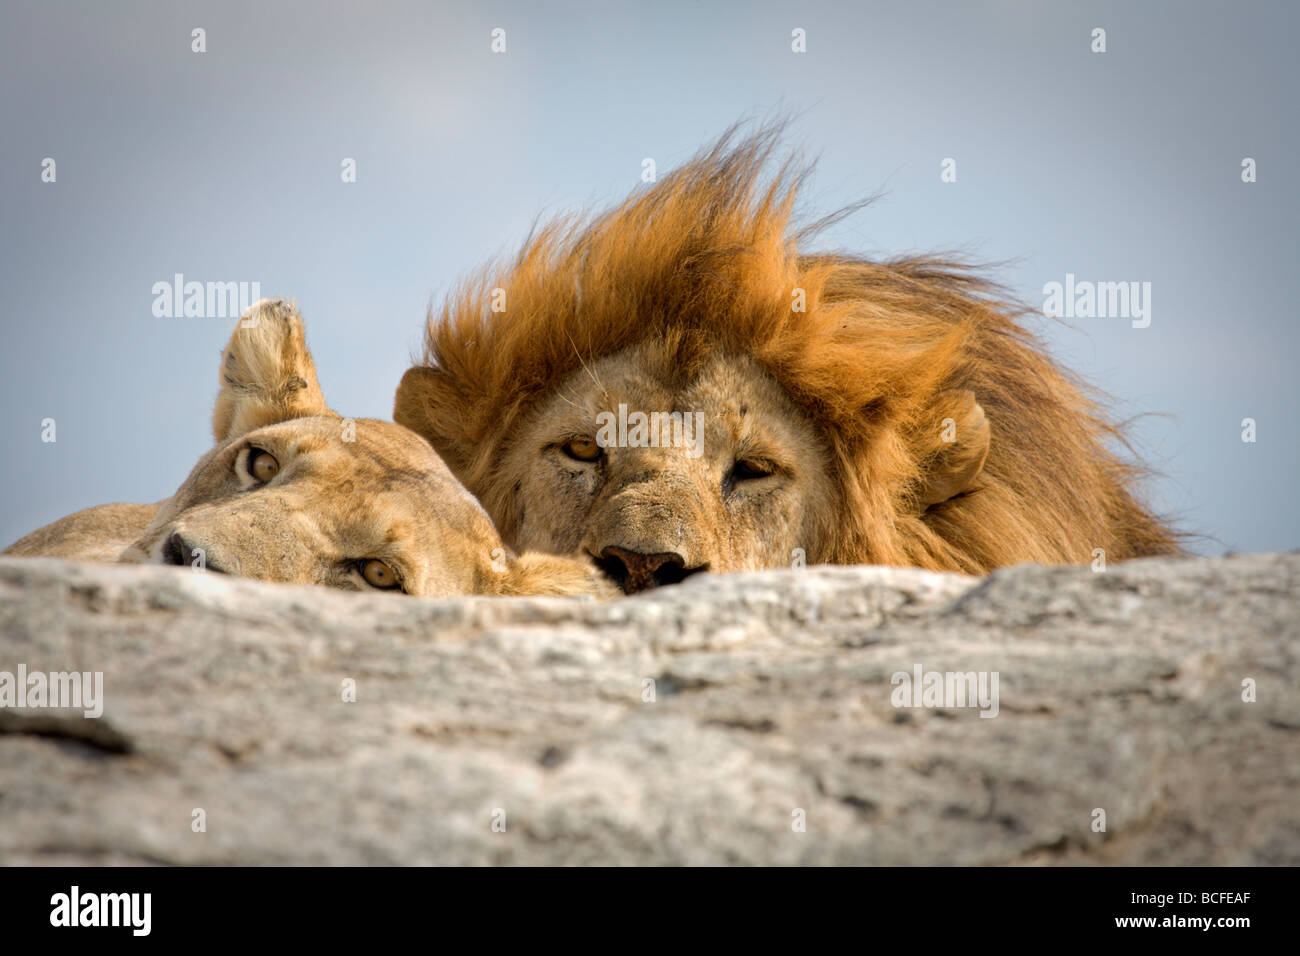 Lion (Panthera leo), le Parc National du Serengeti, Tanzanie Photo Stock